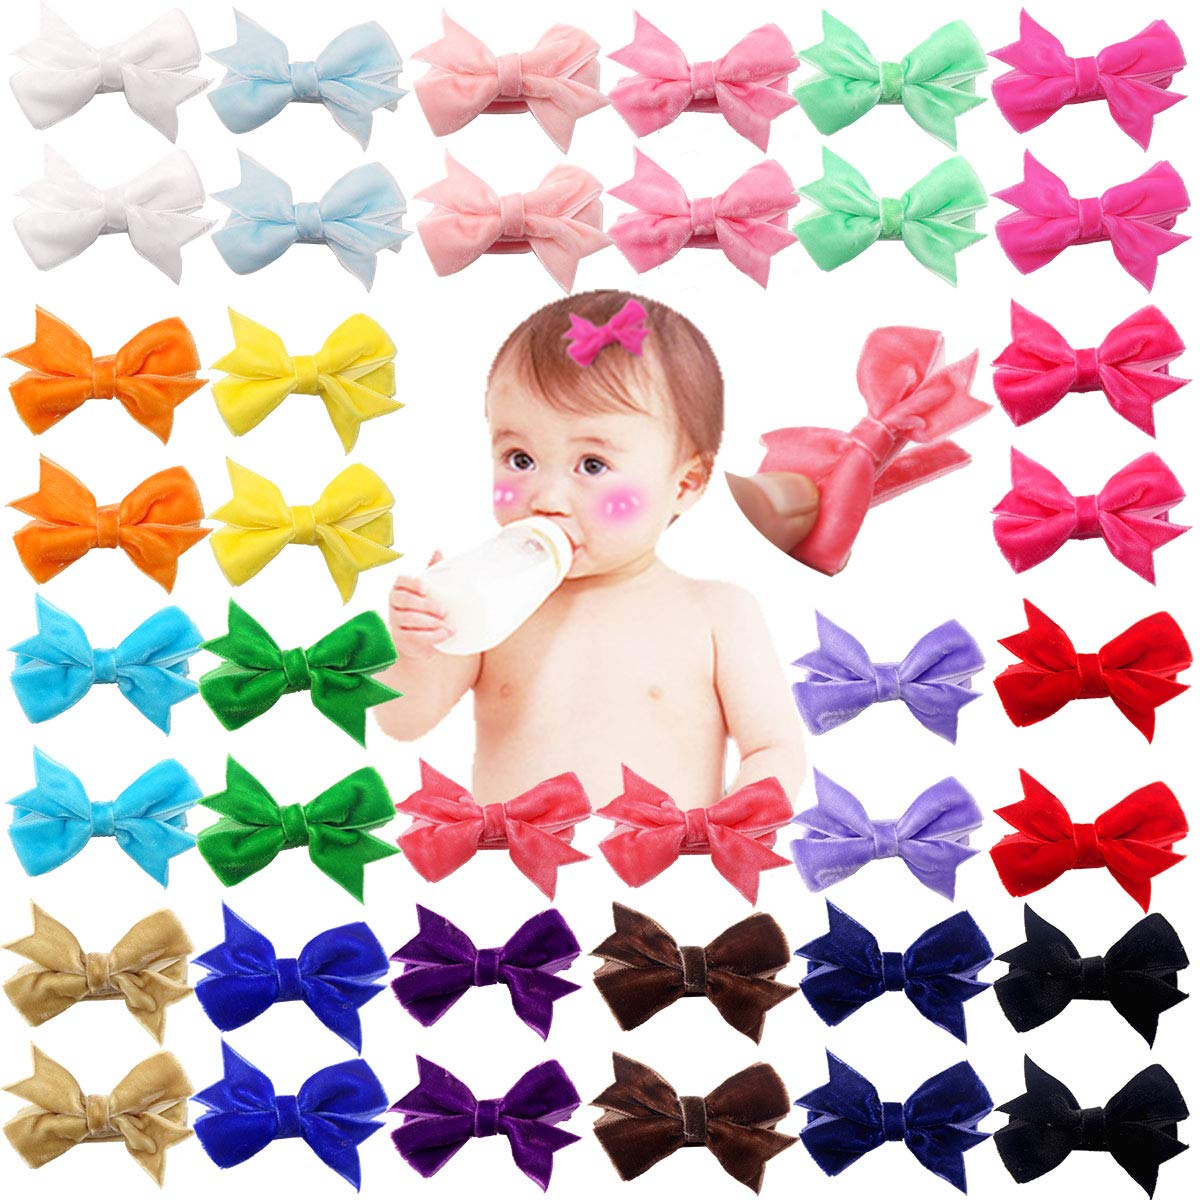 20pcs Grosgrain Half Colvered Hair Clips Barrettes DIY for Baby Girl Todders